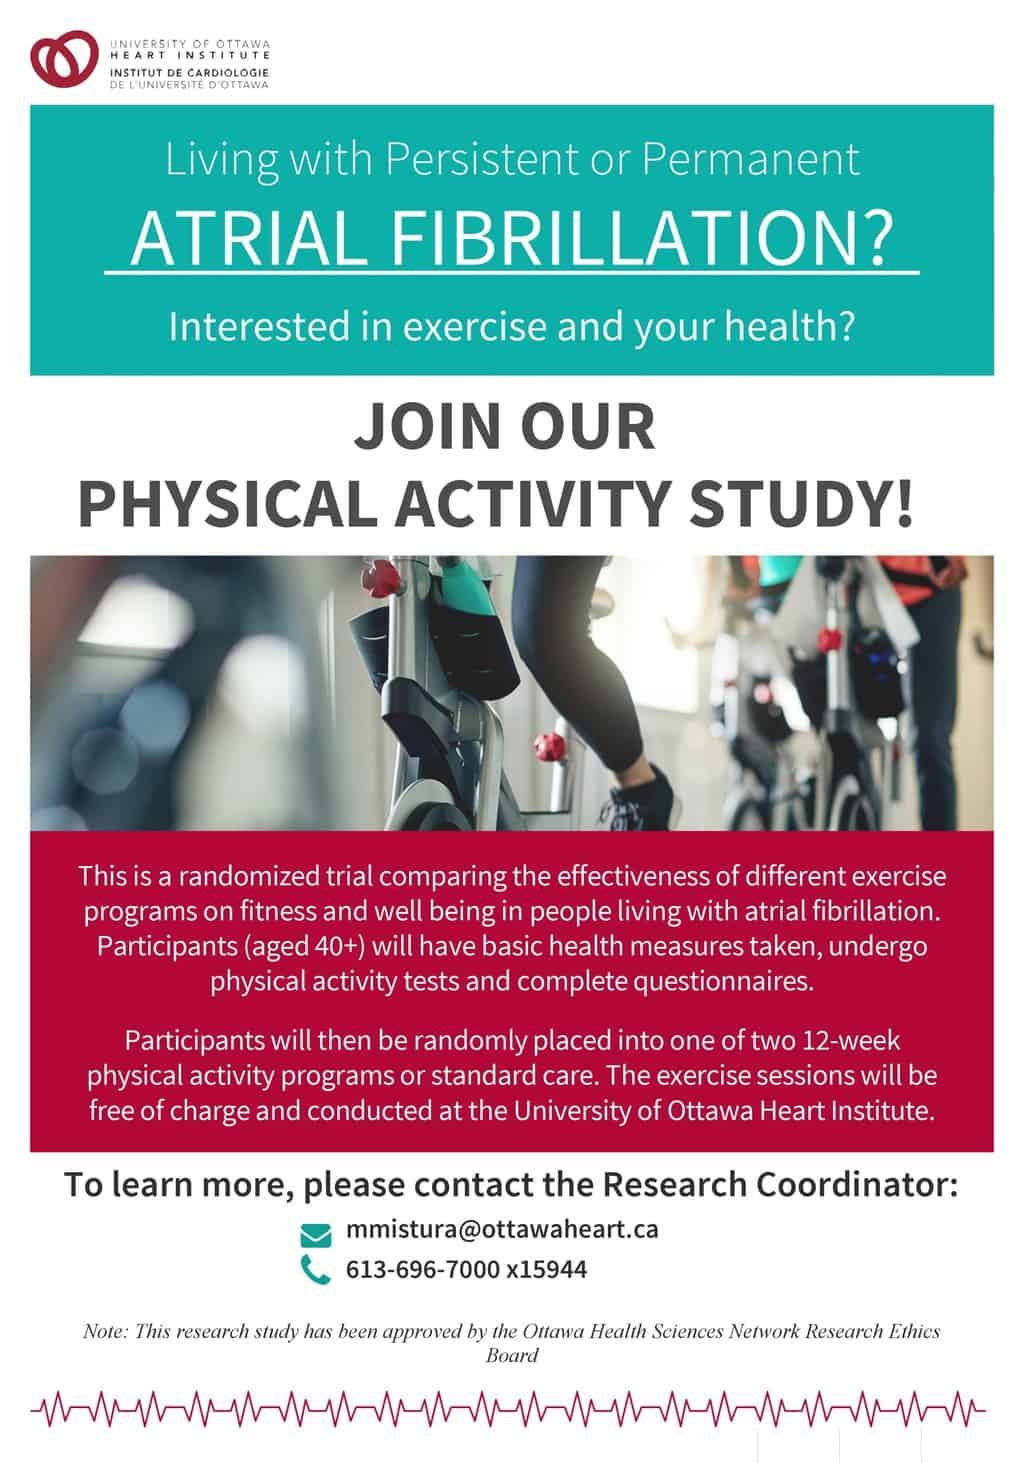 Exciting Atrial Fibrillation Exercise study at the Heart Institute